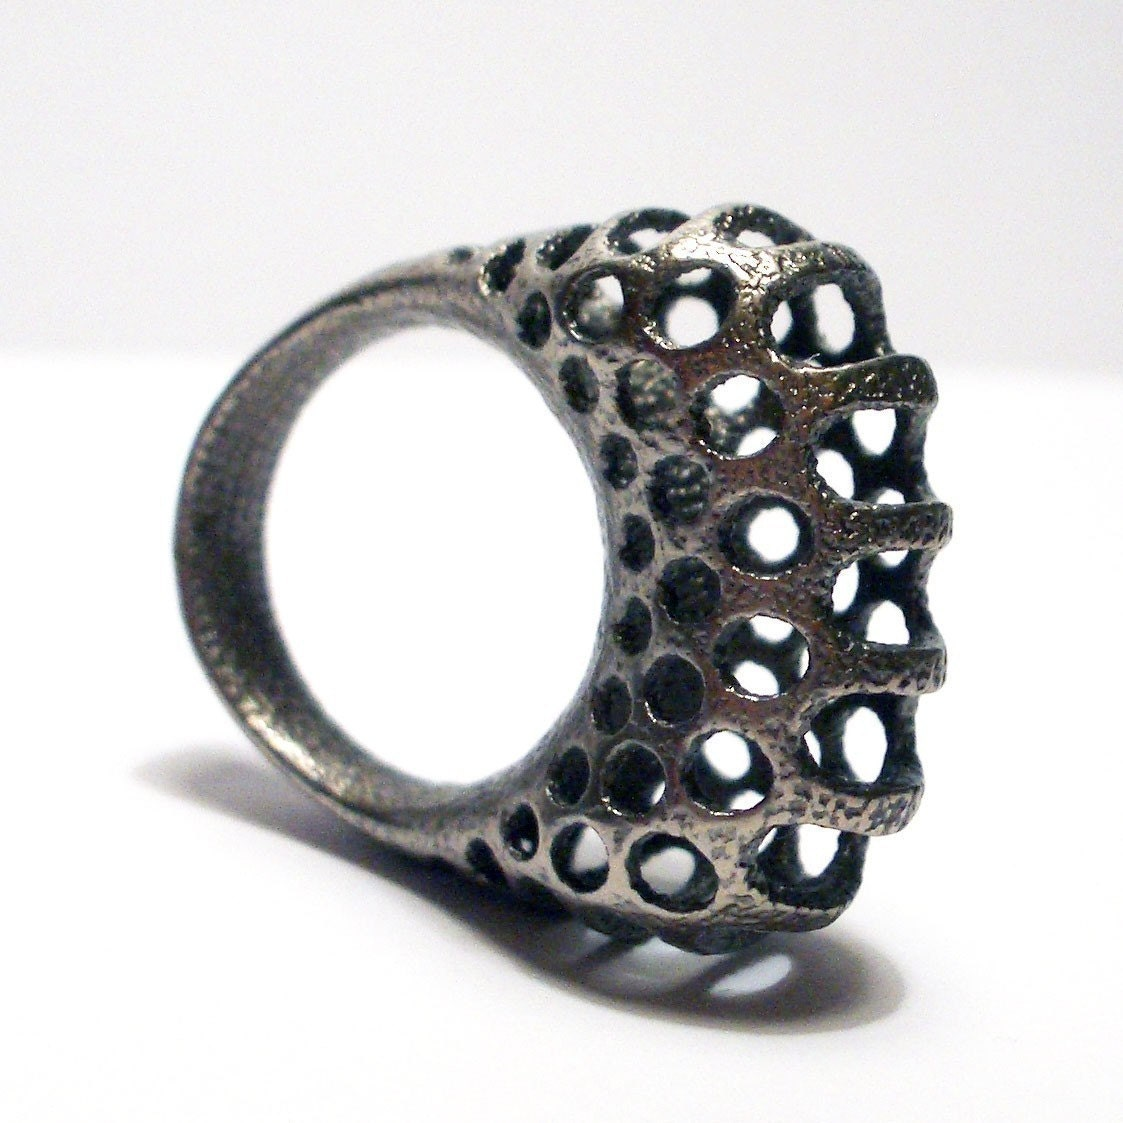 Polyoptic Ring 4.2 in Stainless Steel - 3D printed Free Shipping - uptomuch